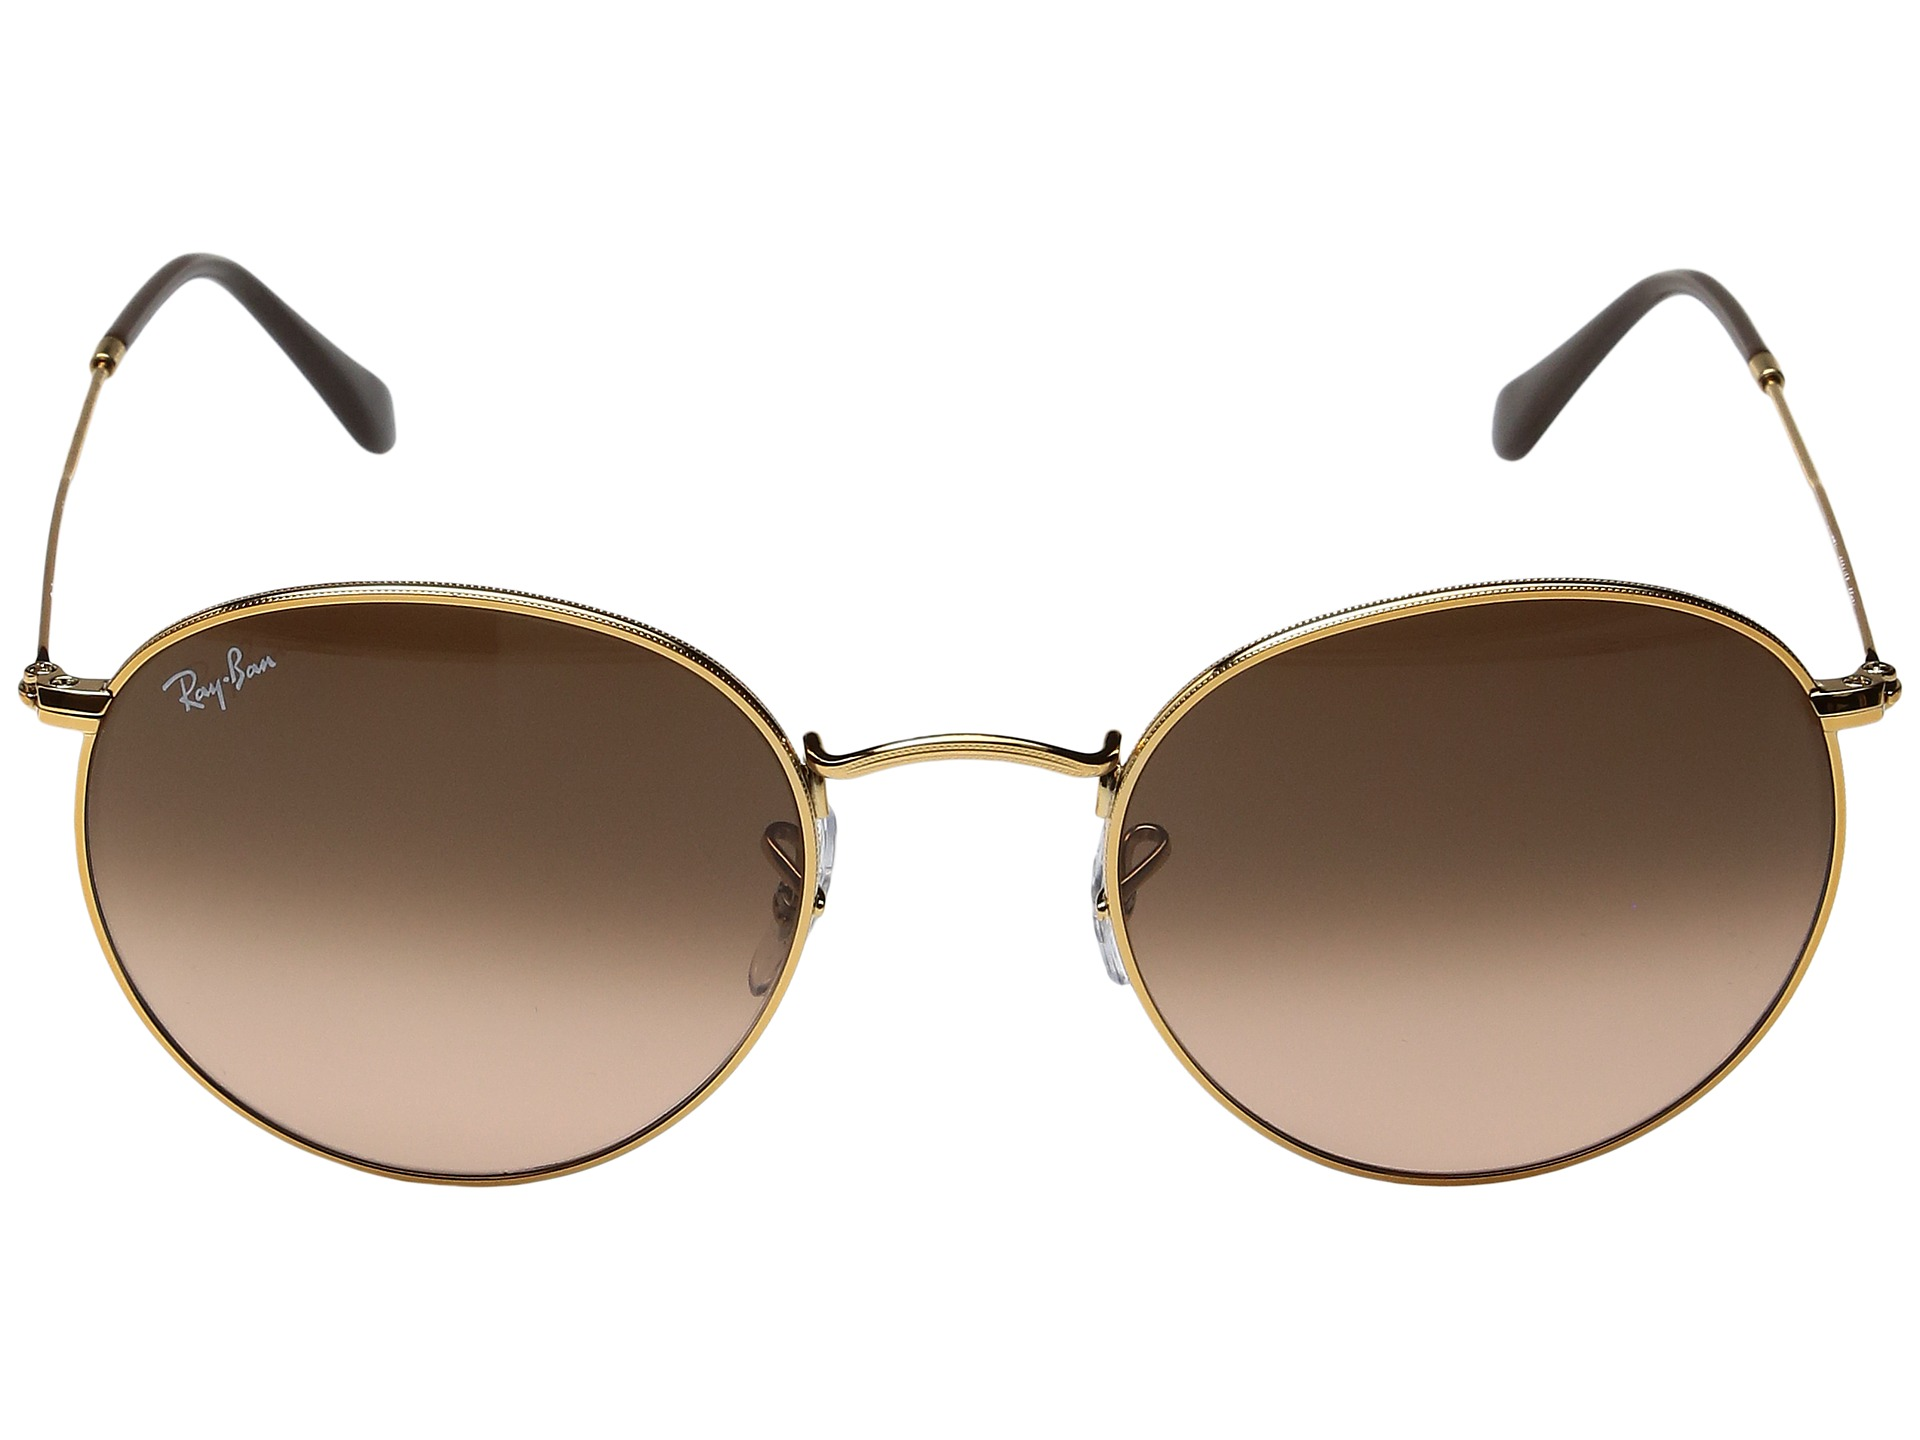 dcfeac8b312 Where To Buy Ray Ban Sunglasses « Heritage Malta